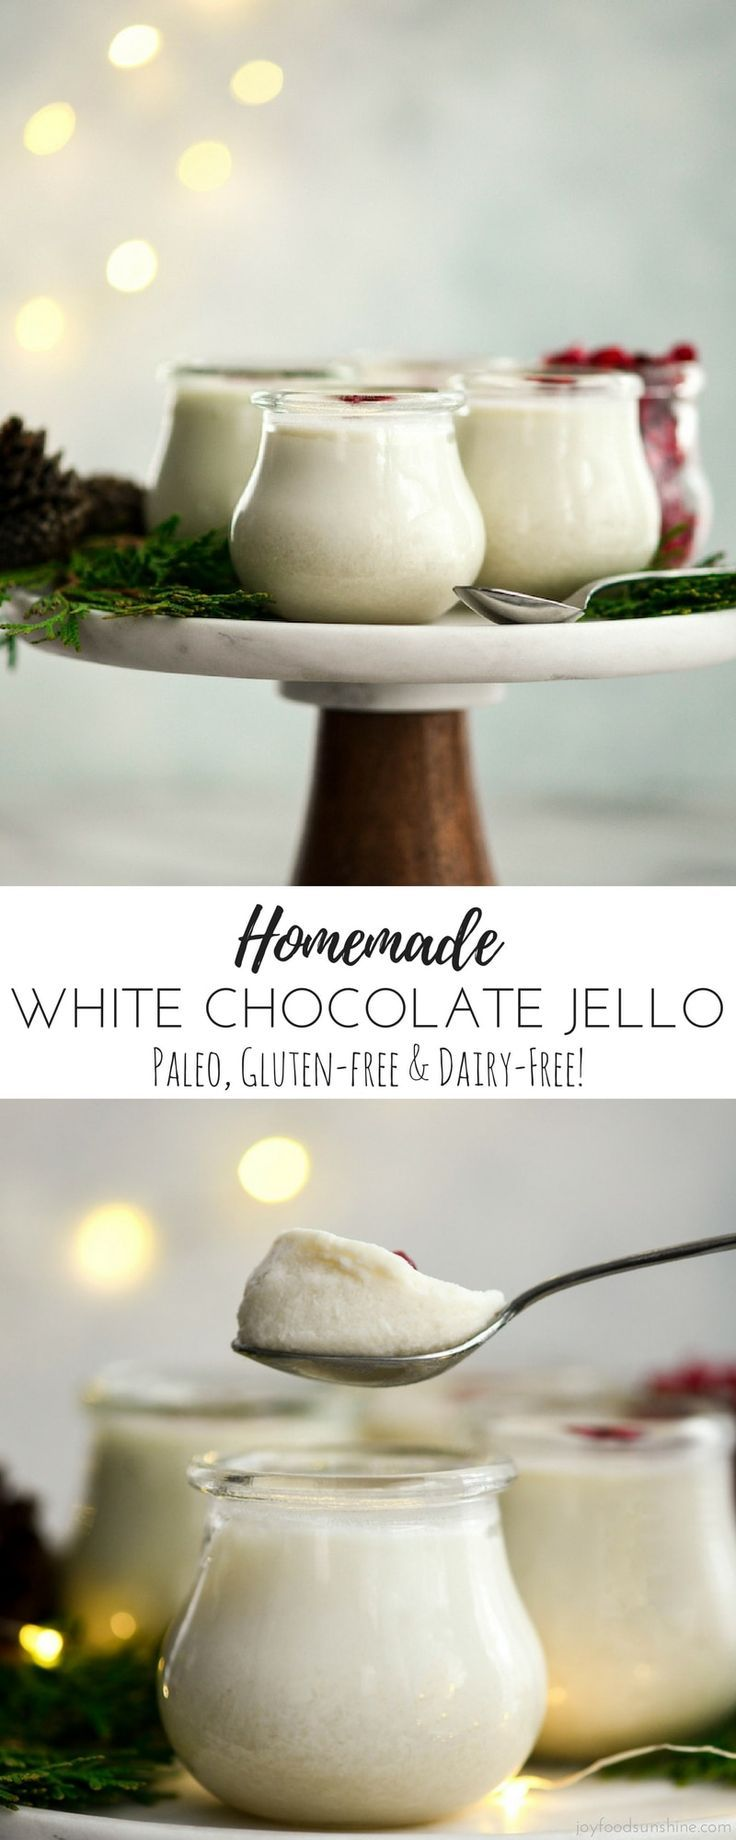 This Paleo Homemade White Chocolate Jello is a light and delicious healthy dessert recipe with only 6 ingredients! It's gluten-free & dairy-free and can be served in elegant little dishes or made into shapes for a fun kid-friendly treat! #homemade #jello